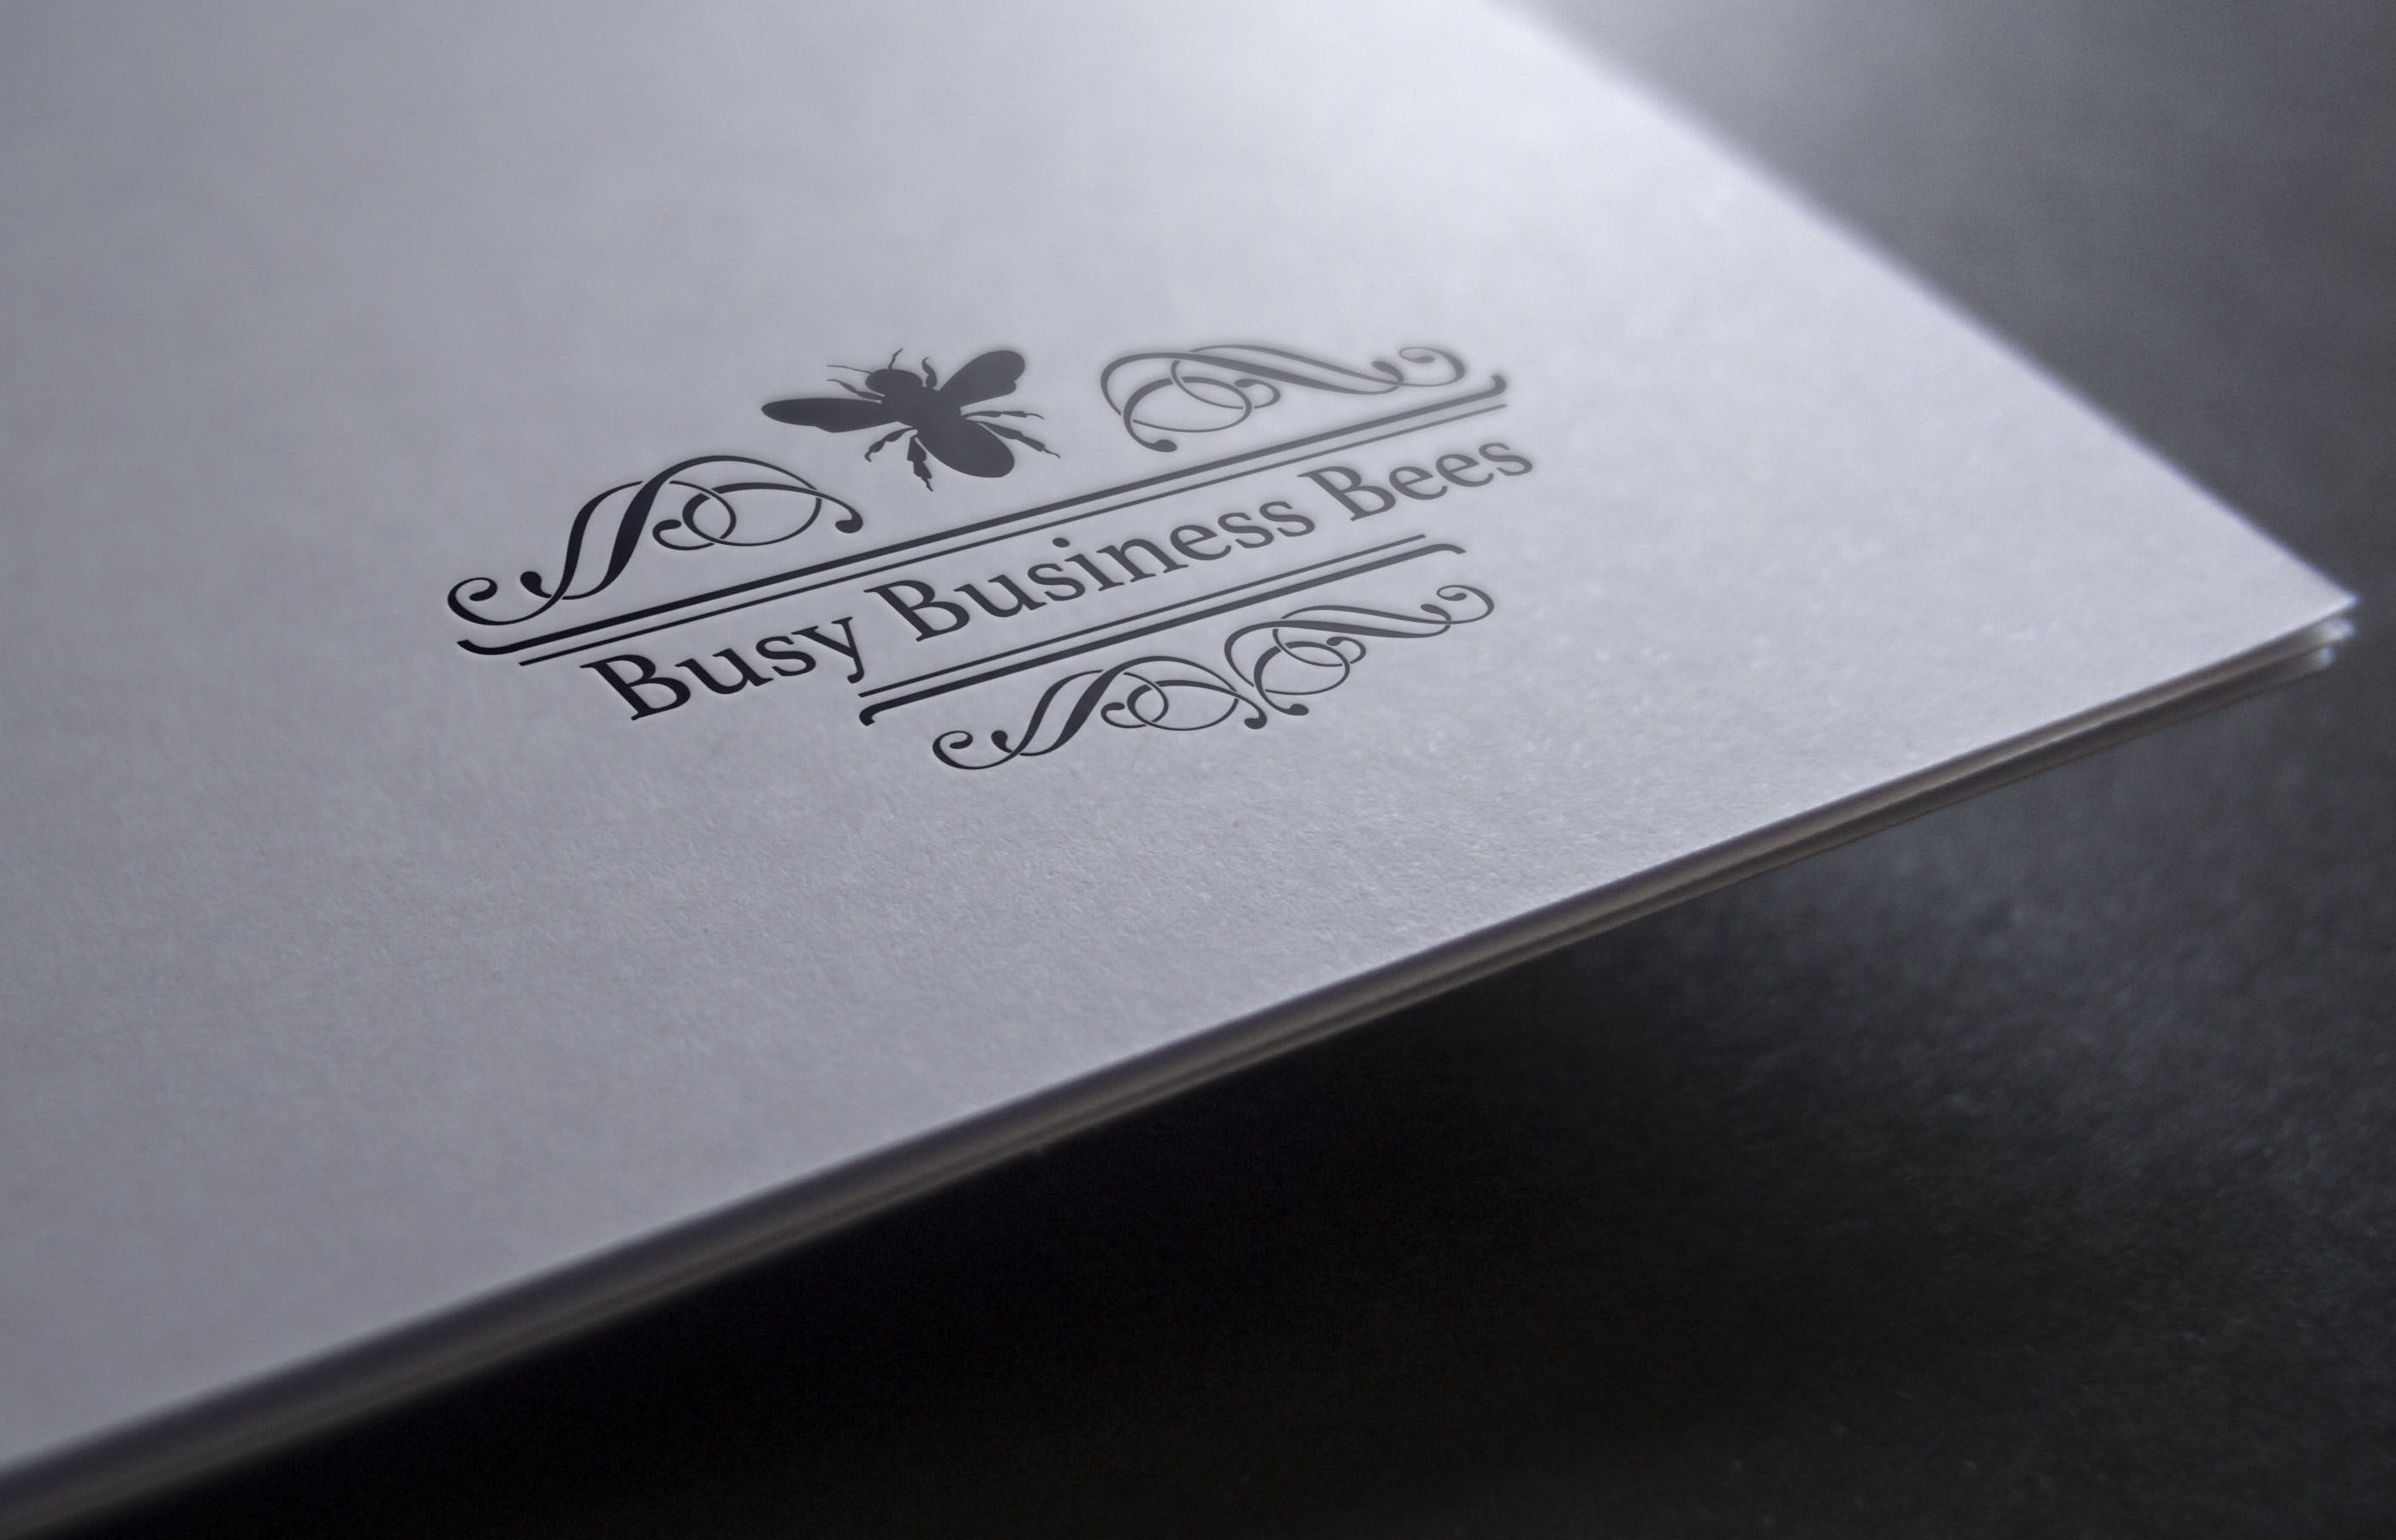 Busy Business Bees Paper Logo Mockup